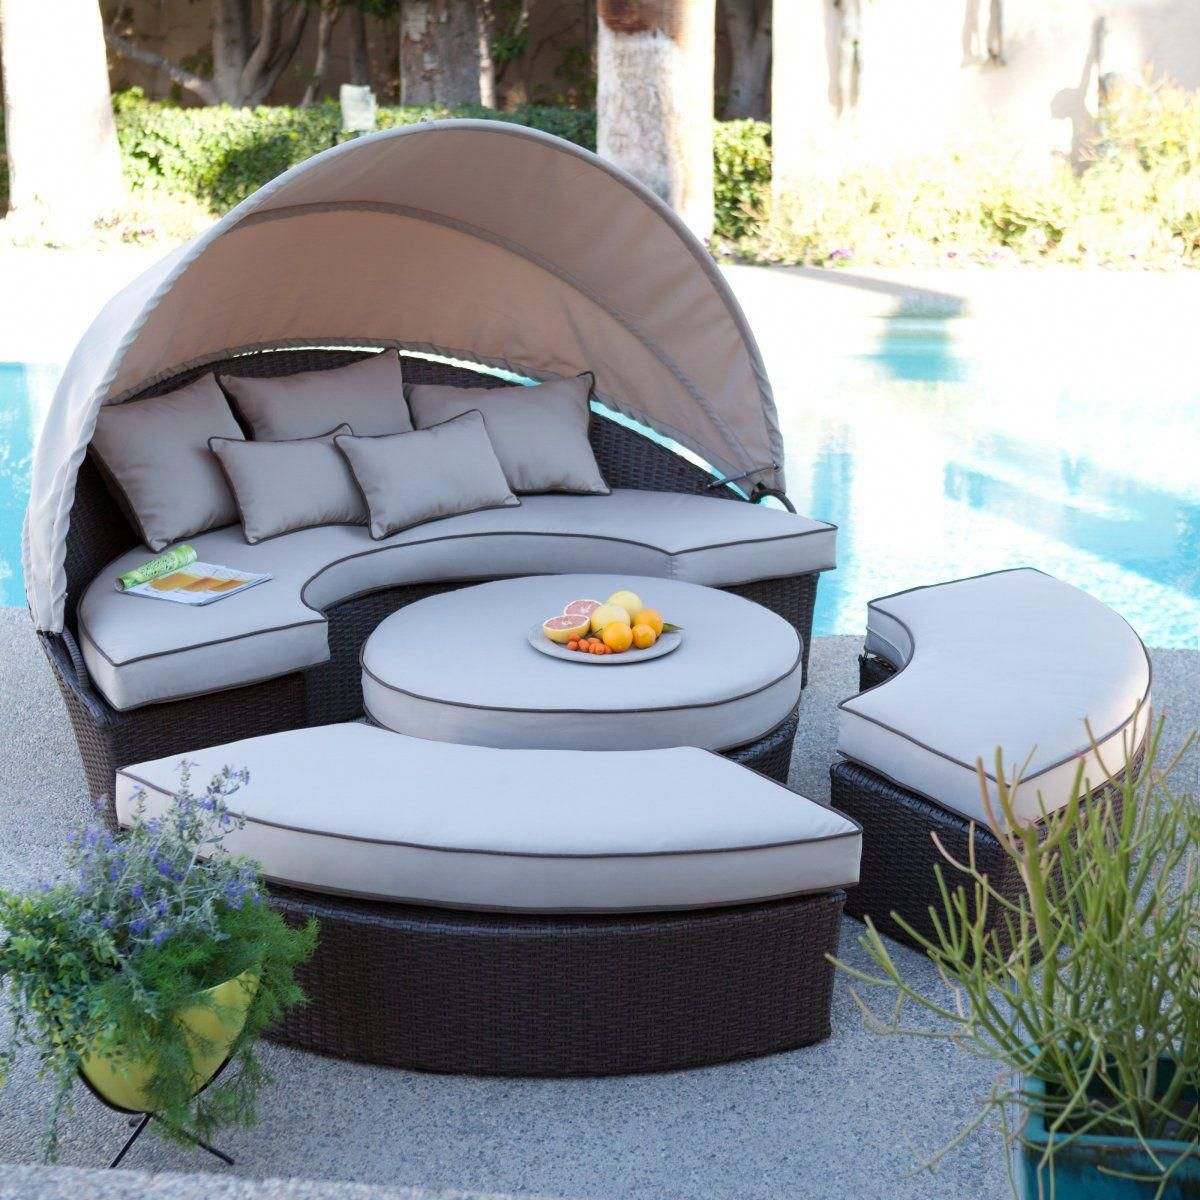 Rendezvous all weather wicker sectional daybed patio chairs at patio furniture usa outdoorfurniturechairs